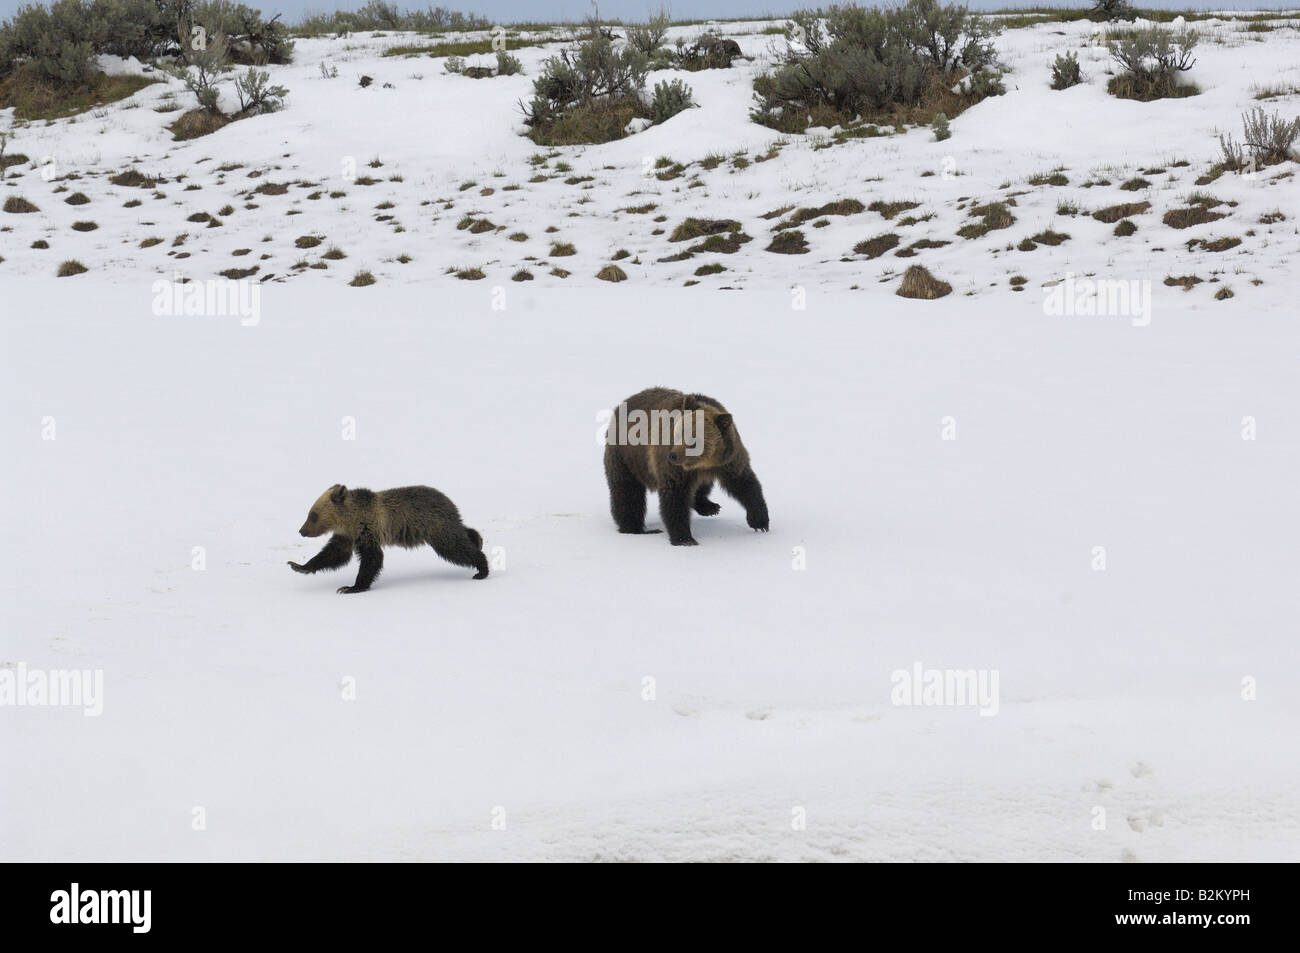 Grizzly Bears playing in the snow - Stock Image